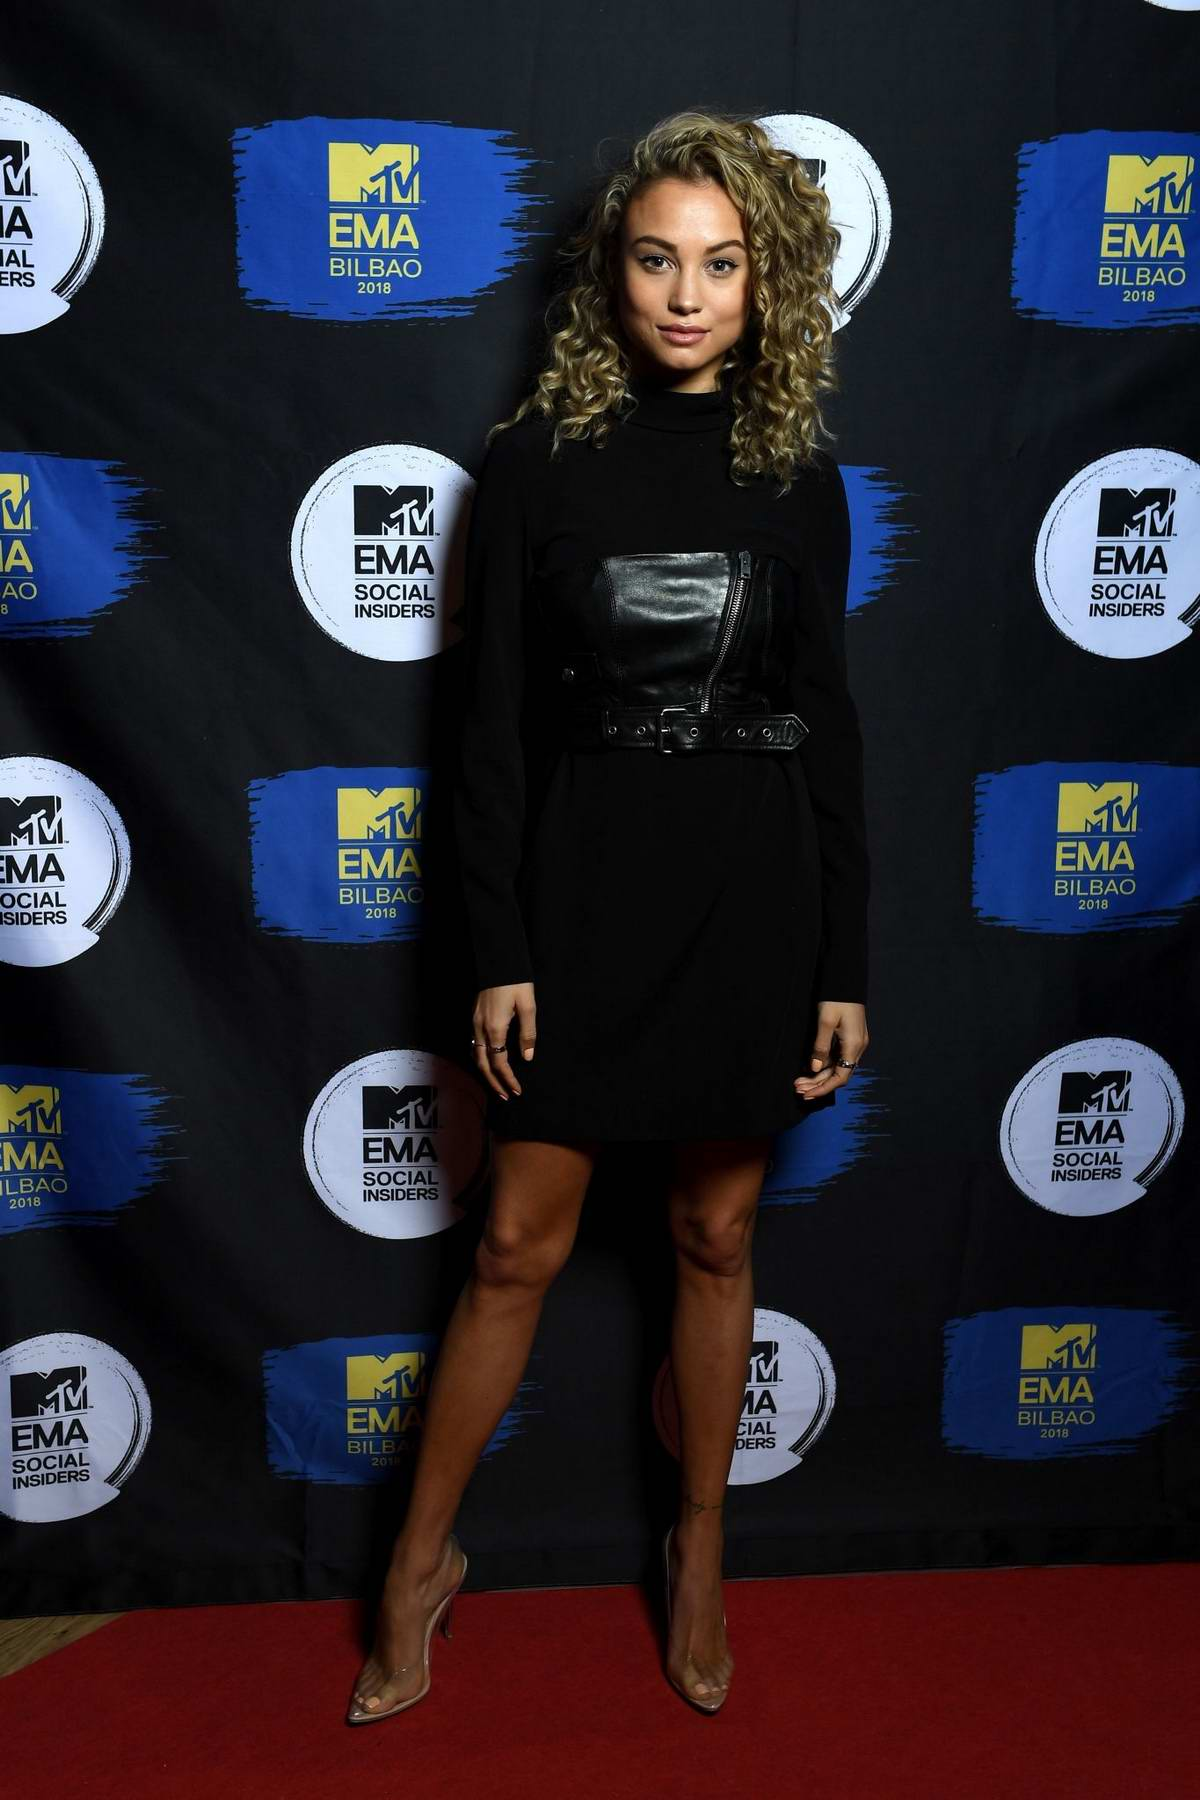 Rose Bertram attends the Social Insiders Dinner ahead of the MTV EMA 2018 in Bilbao, Spain